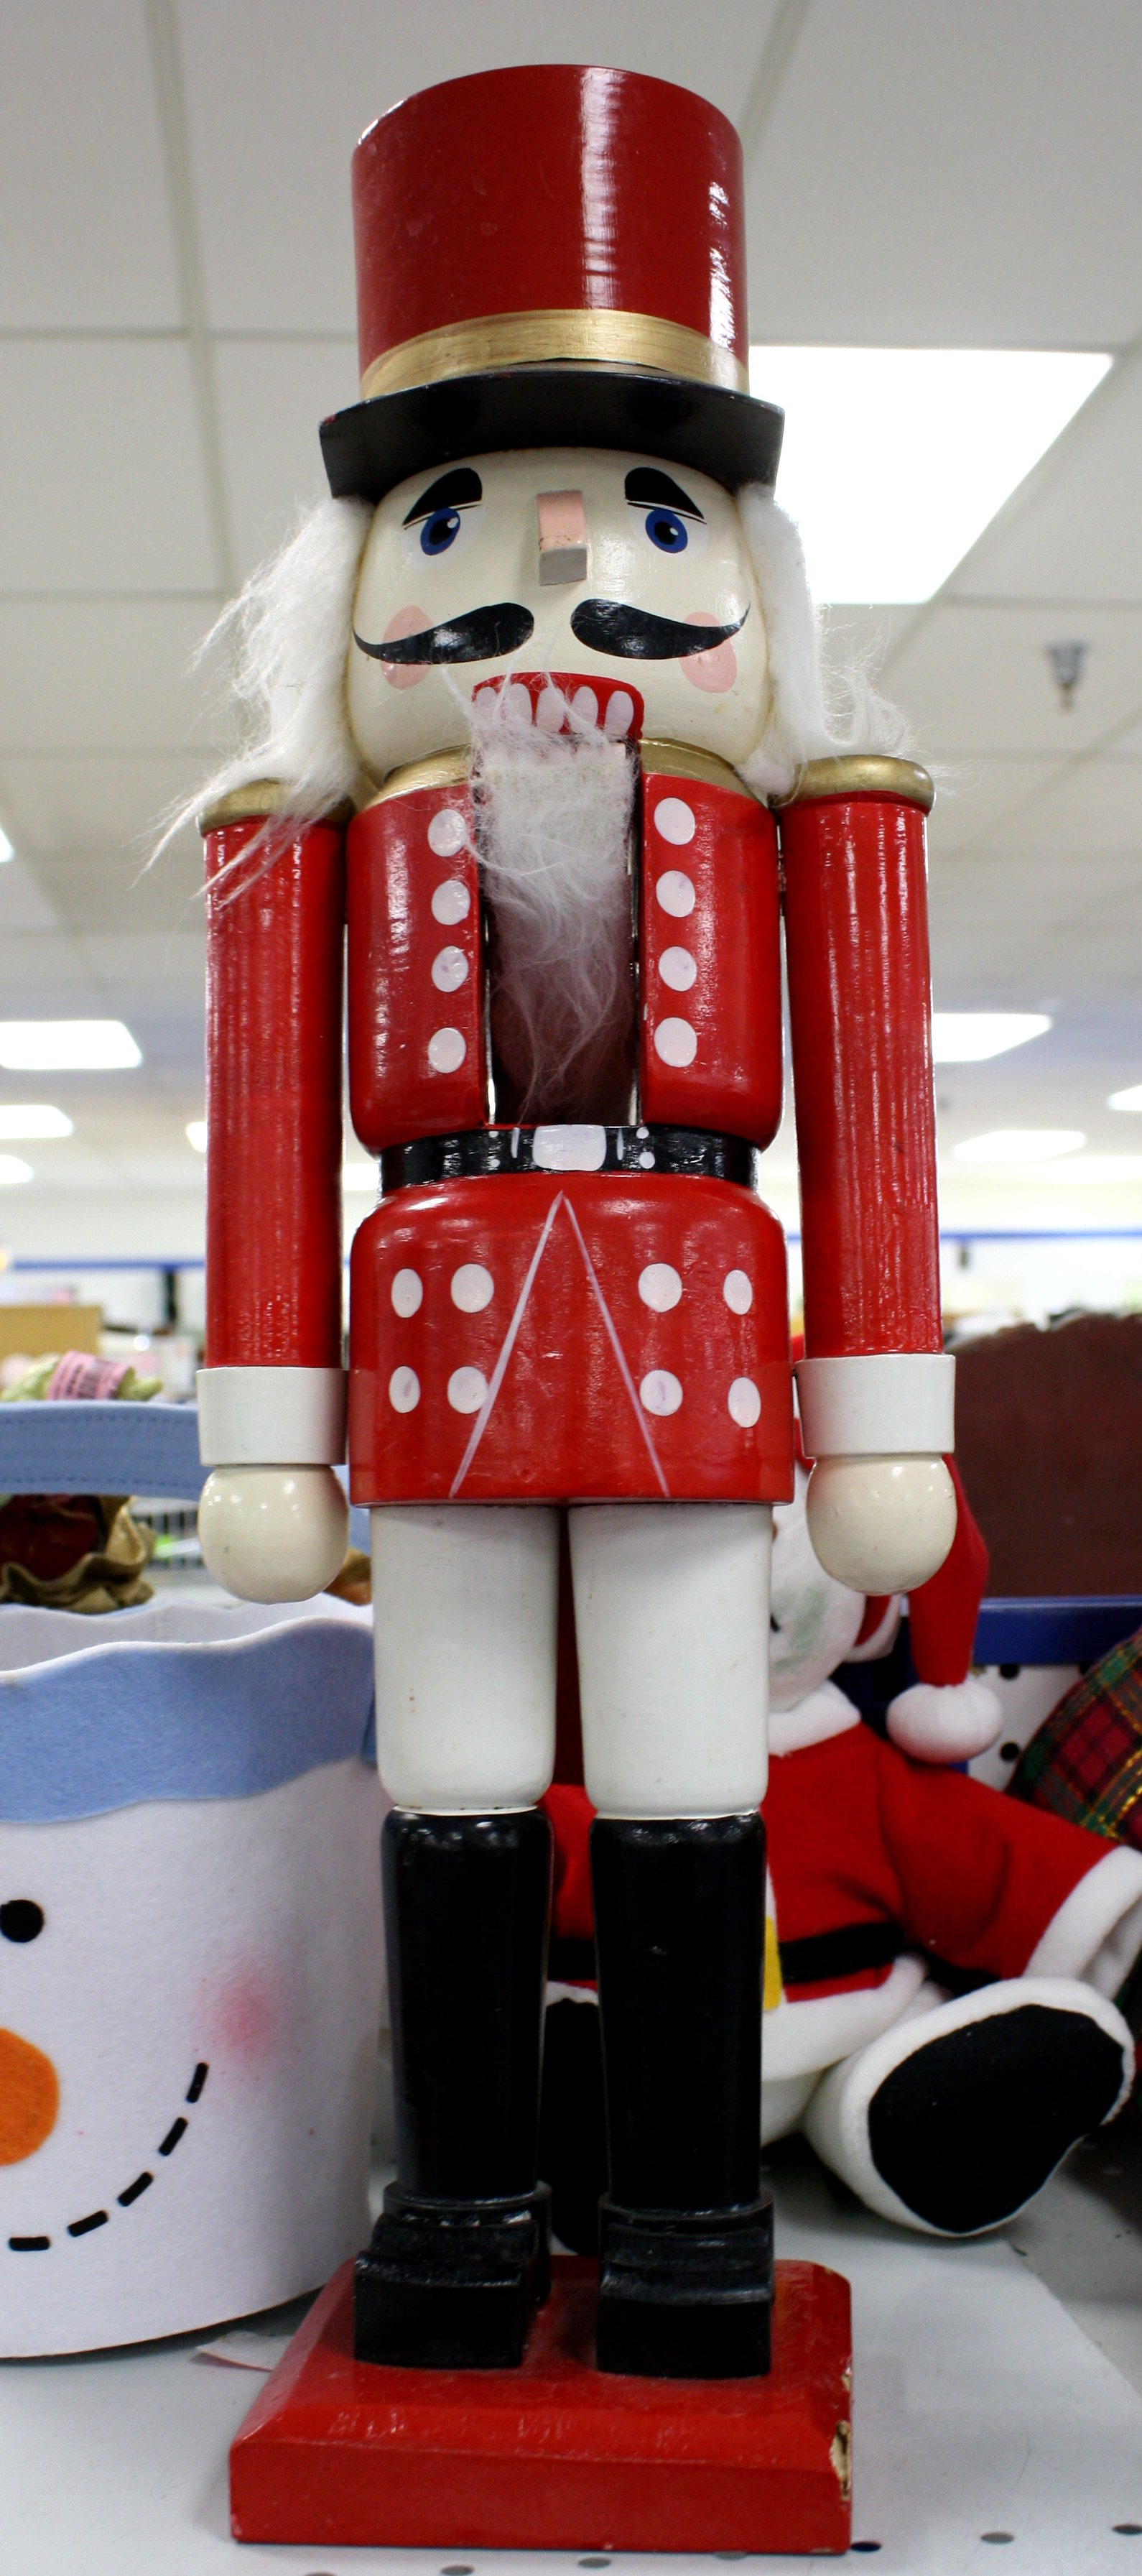 How to make a nutcracker christmas decoration - Nutcracker Christmas Decoration